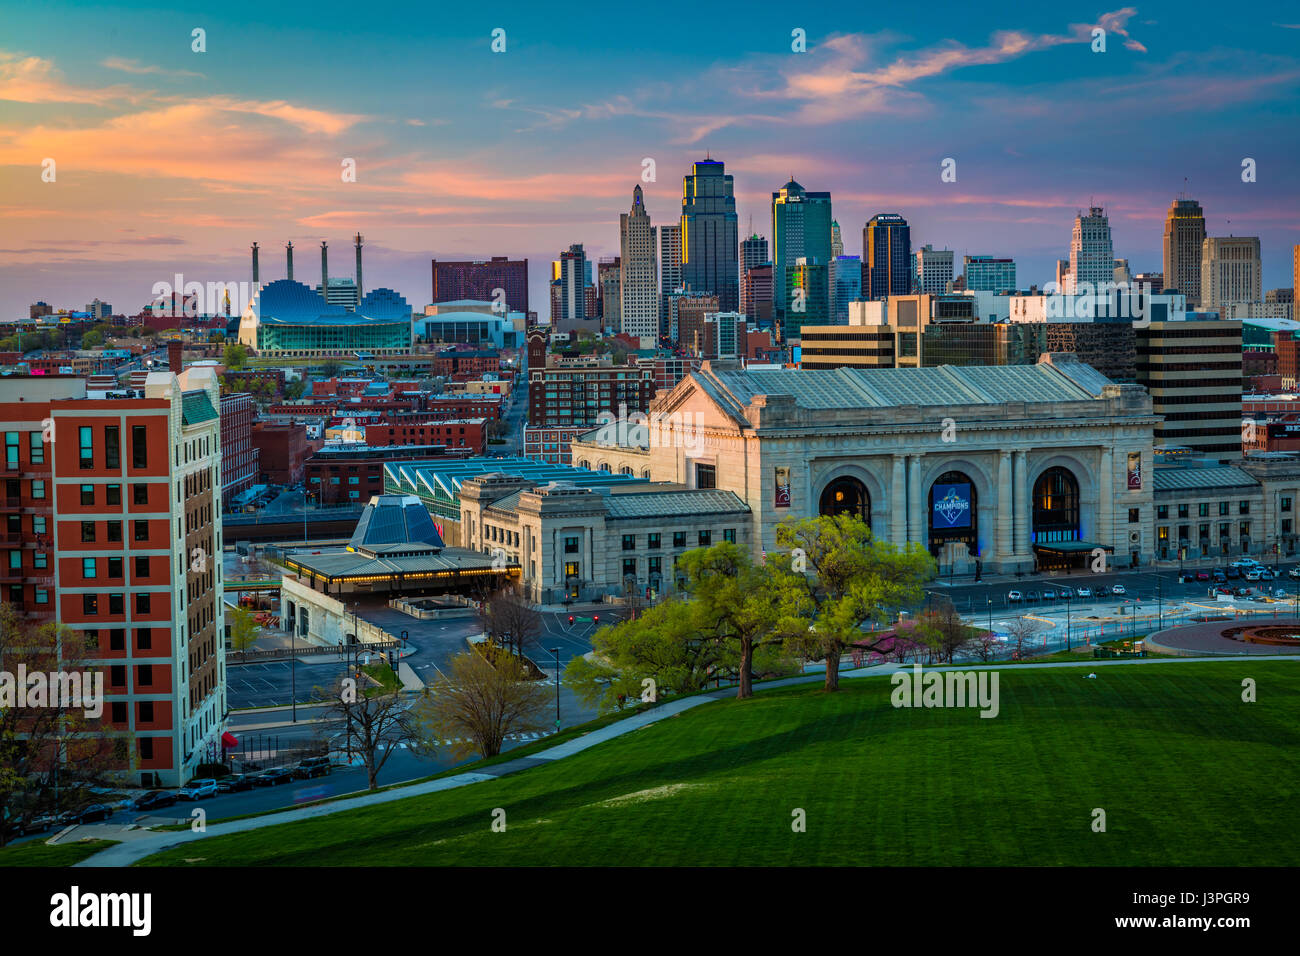 Kansas City (often referred to as K.C.) is the most populous city in the U.S. state of Missouri. In 2010, it had - Stock Image